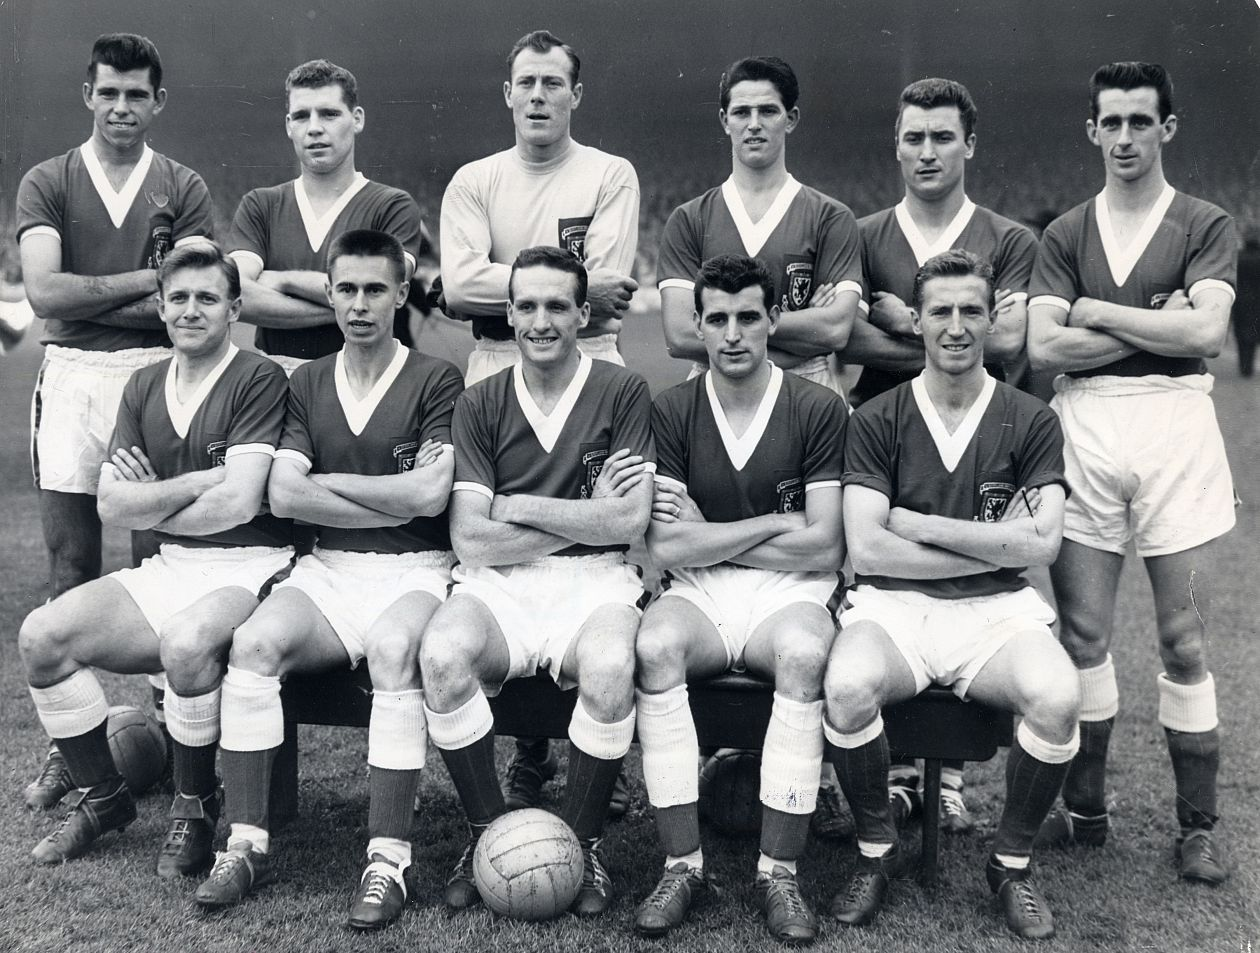 Colin Baker (Back row, second from the left). Wales National Team, November 1960